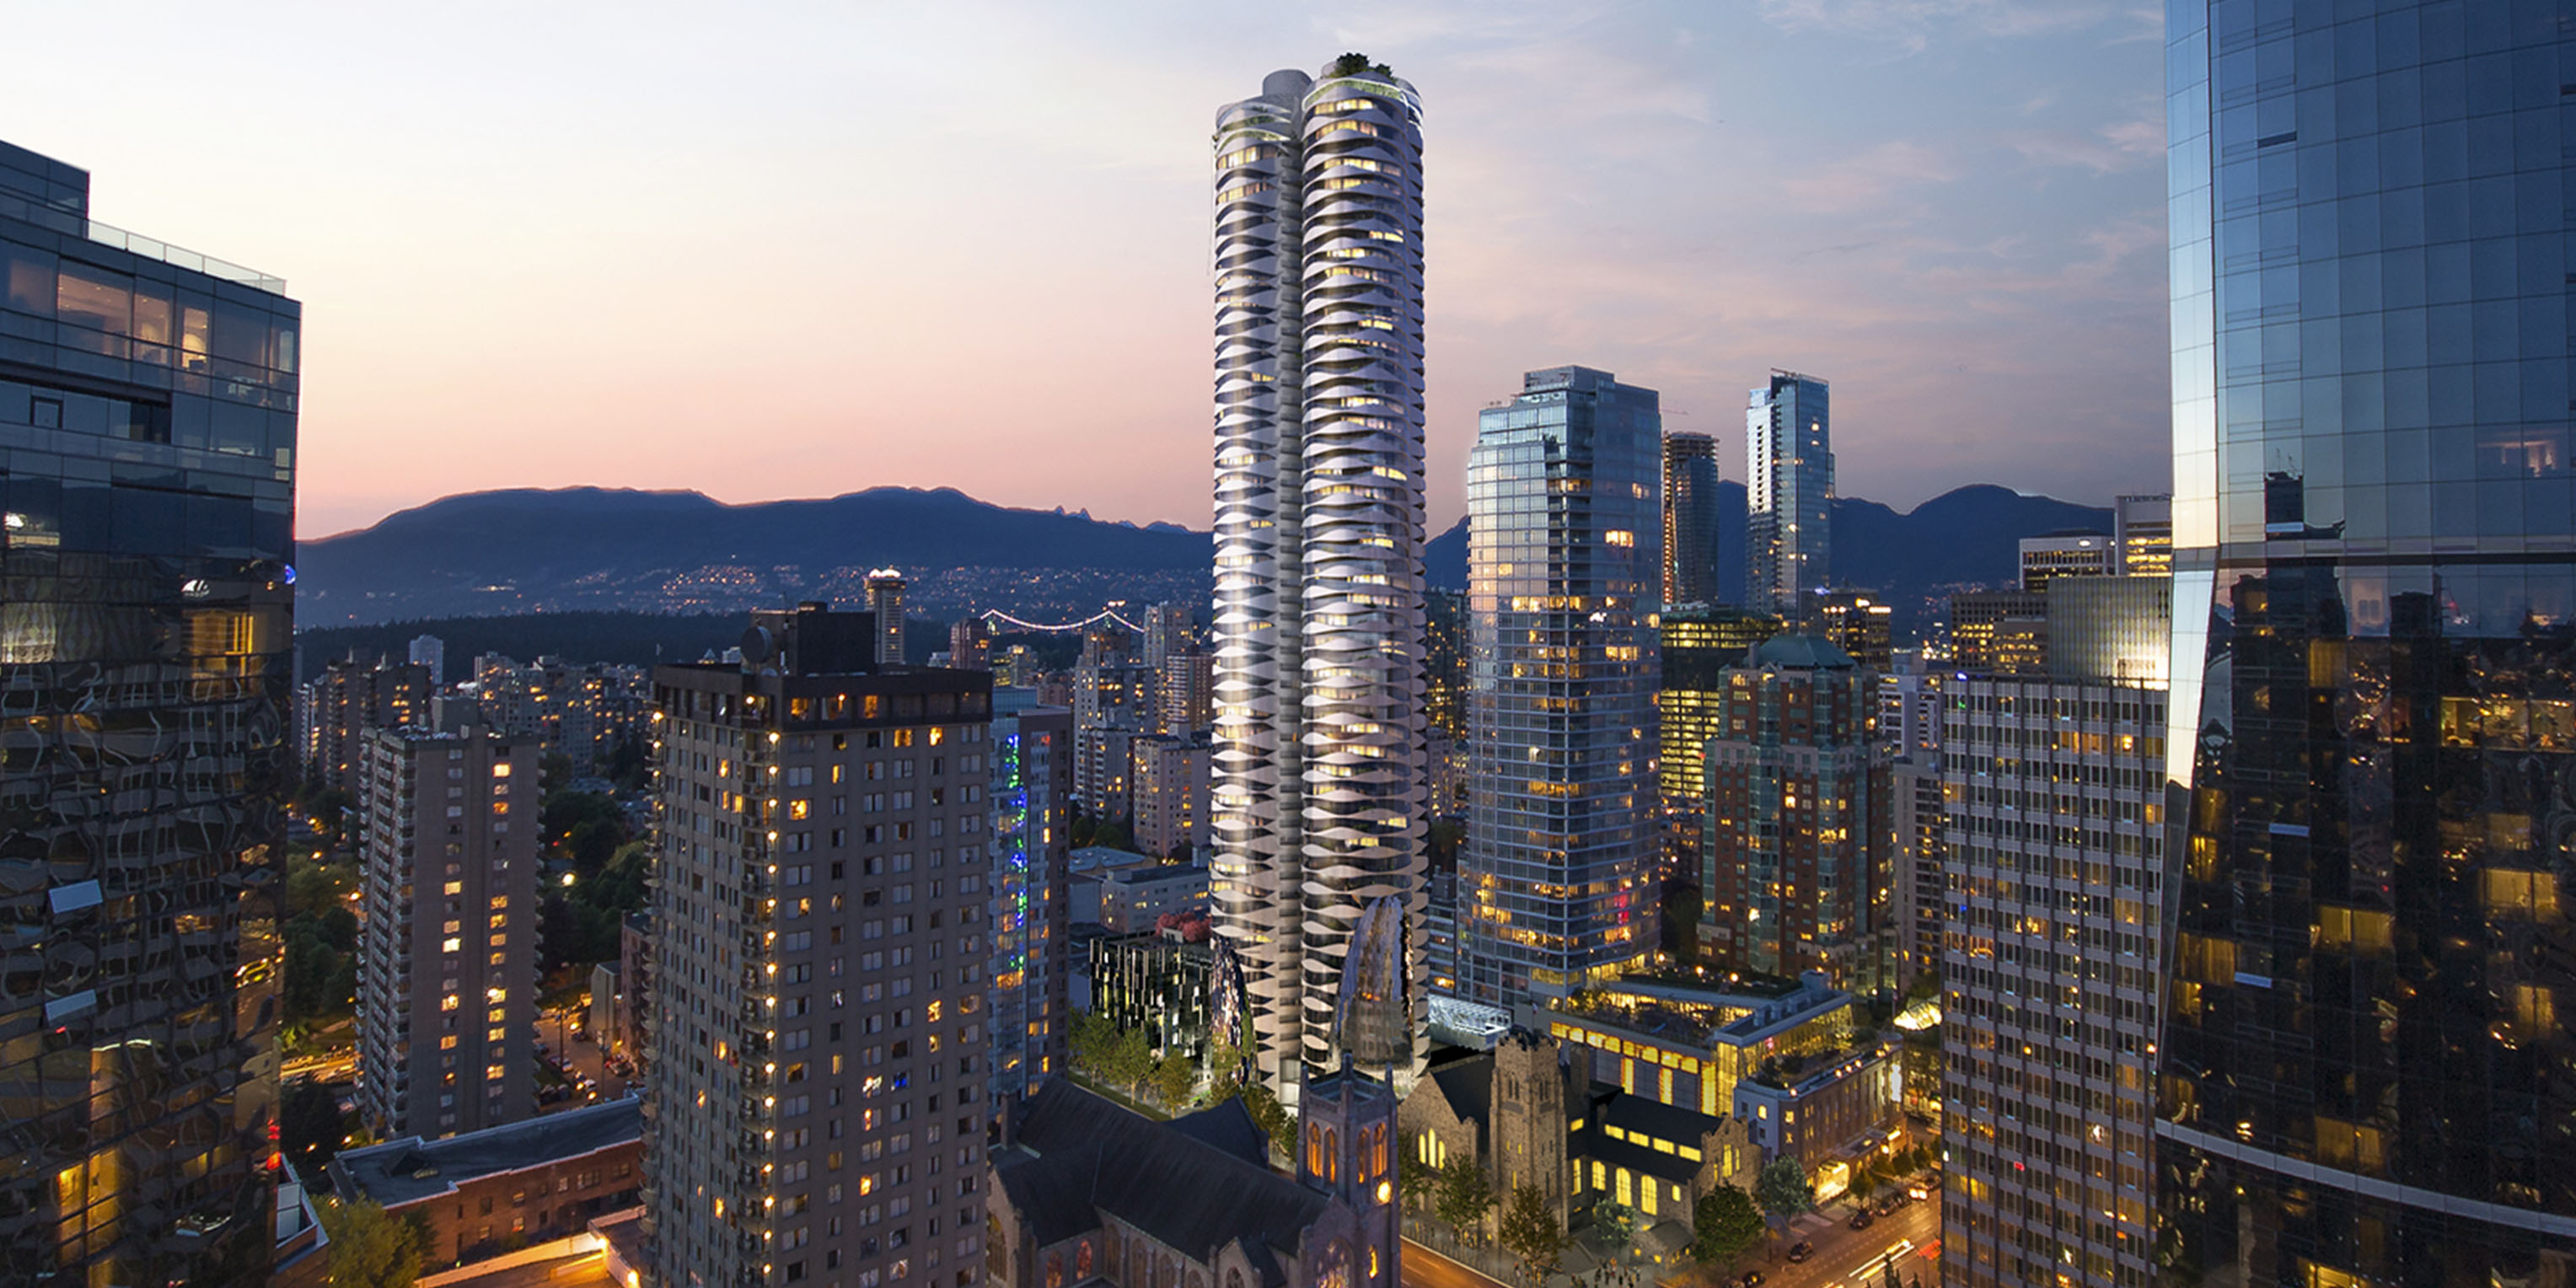 City view of Burrard & Nelson by Bing Thom.